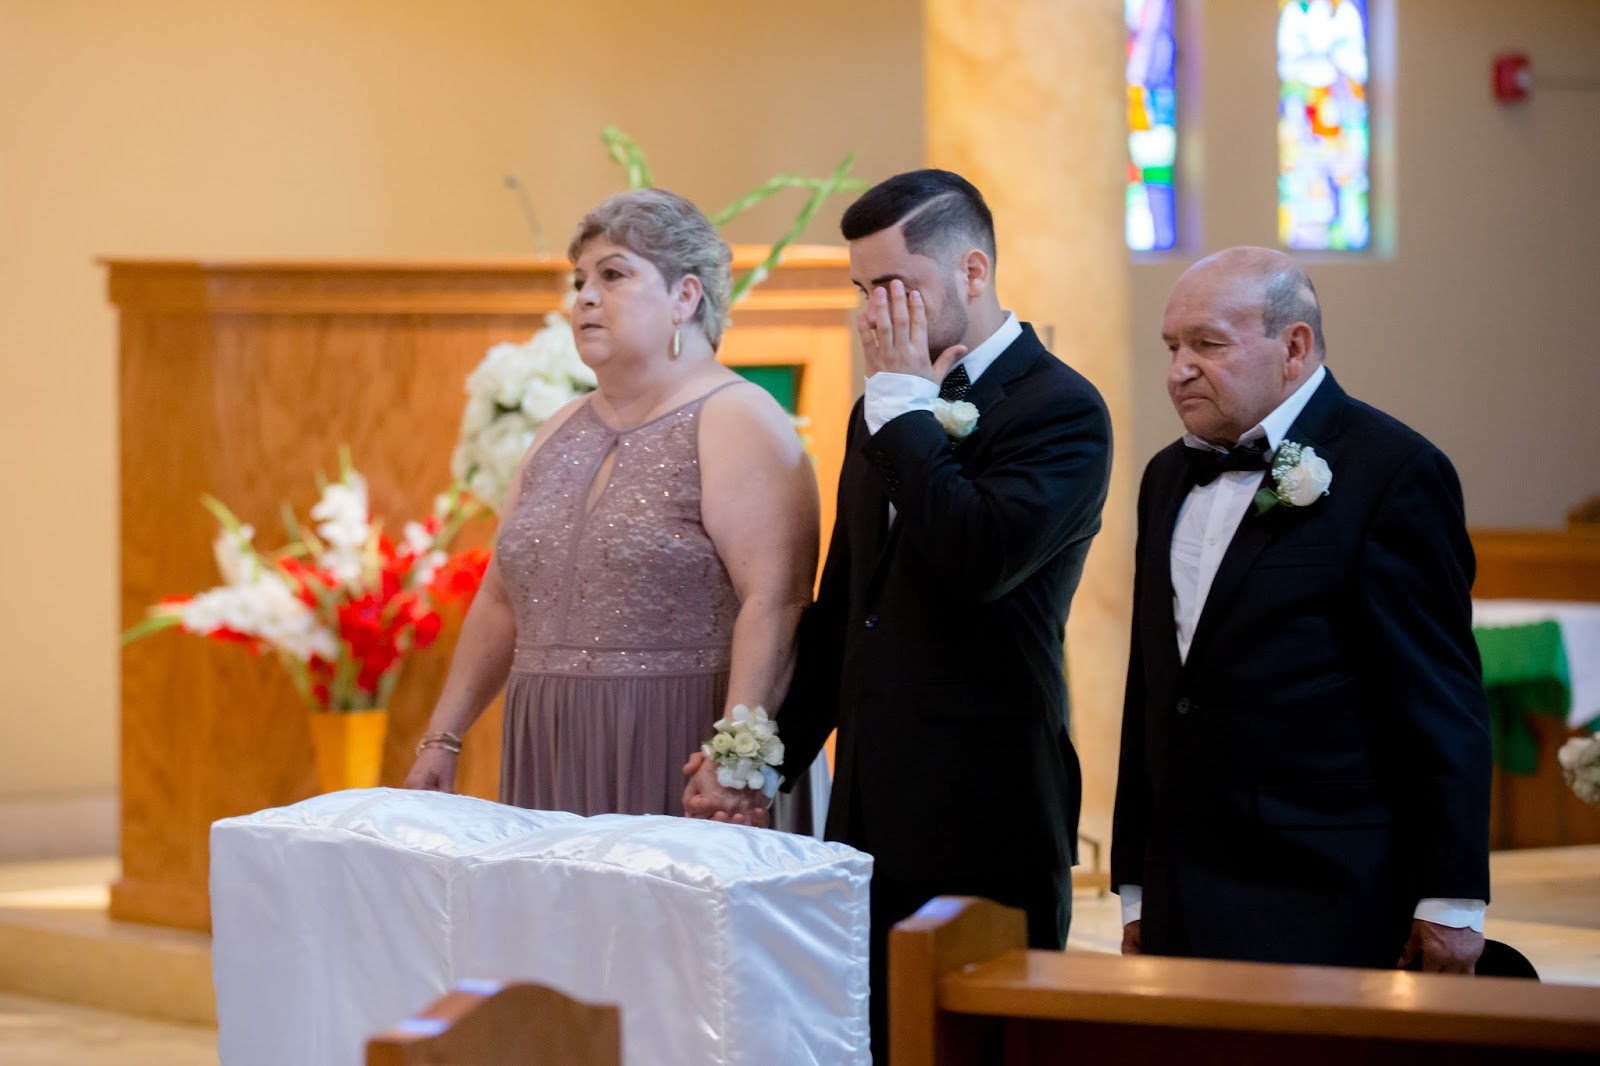 Groom with Parents at the Altar